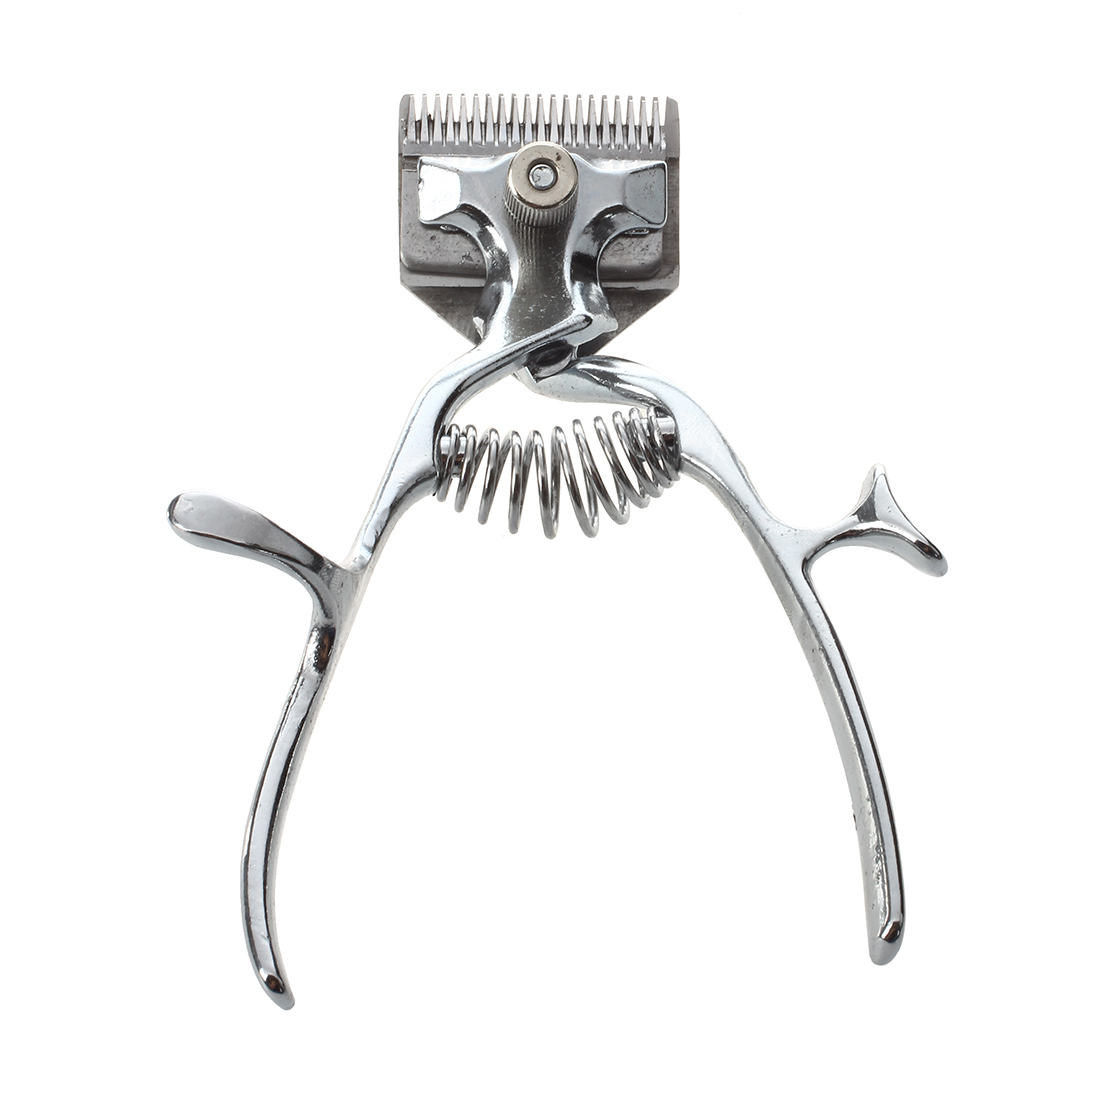 Manual Clipper Haircut Hand Push Low Noise Non